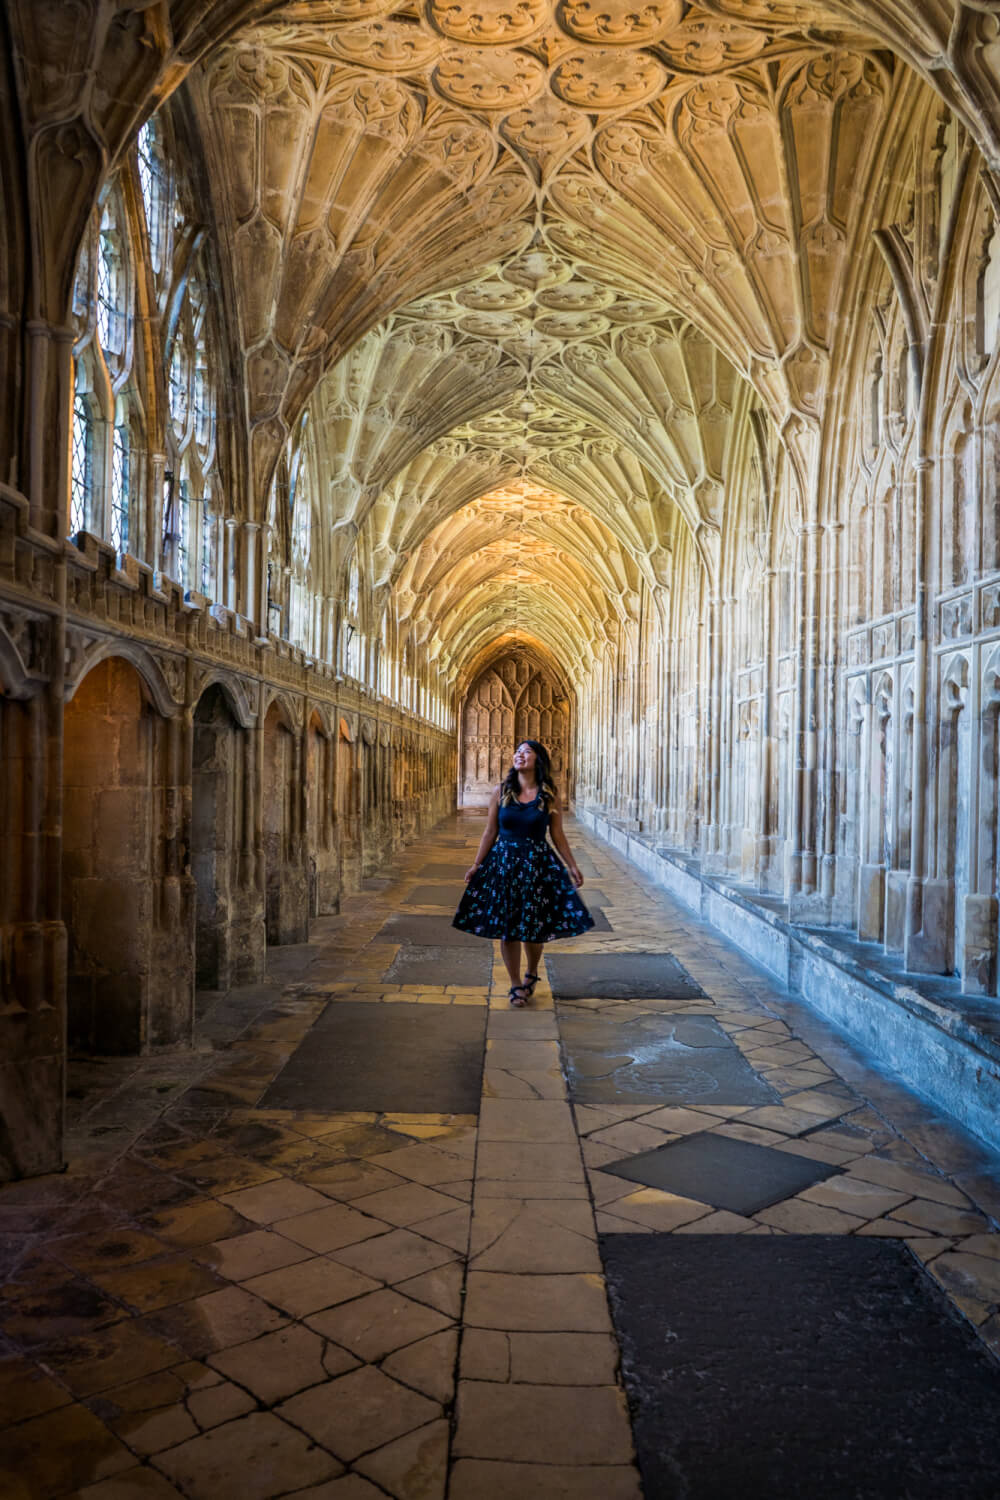 Christina Guan standing in the cloister of Gloucester Cathedral in Gloucester, Gloucestershire, England